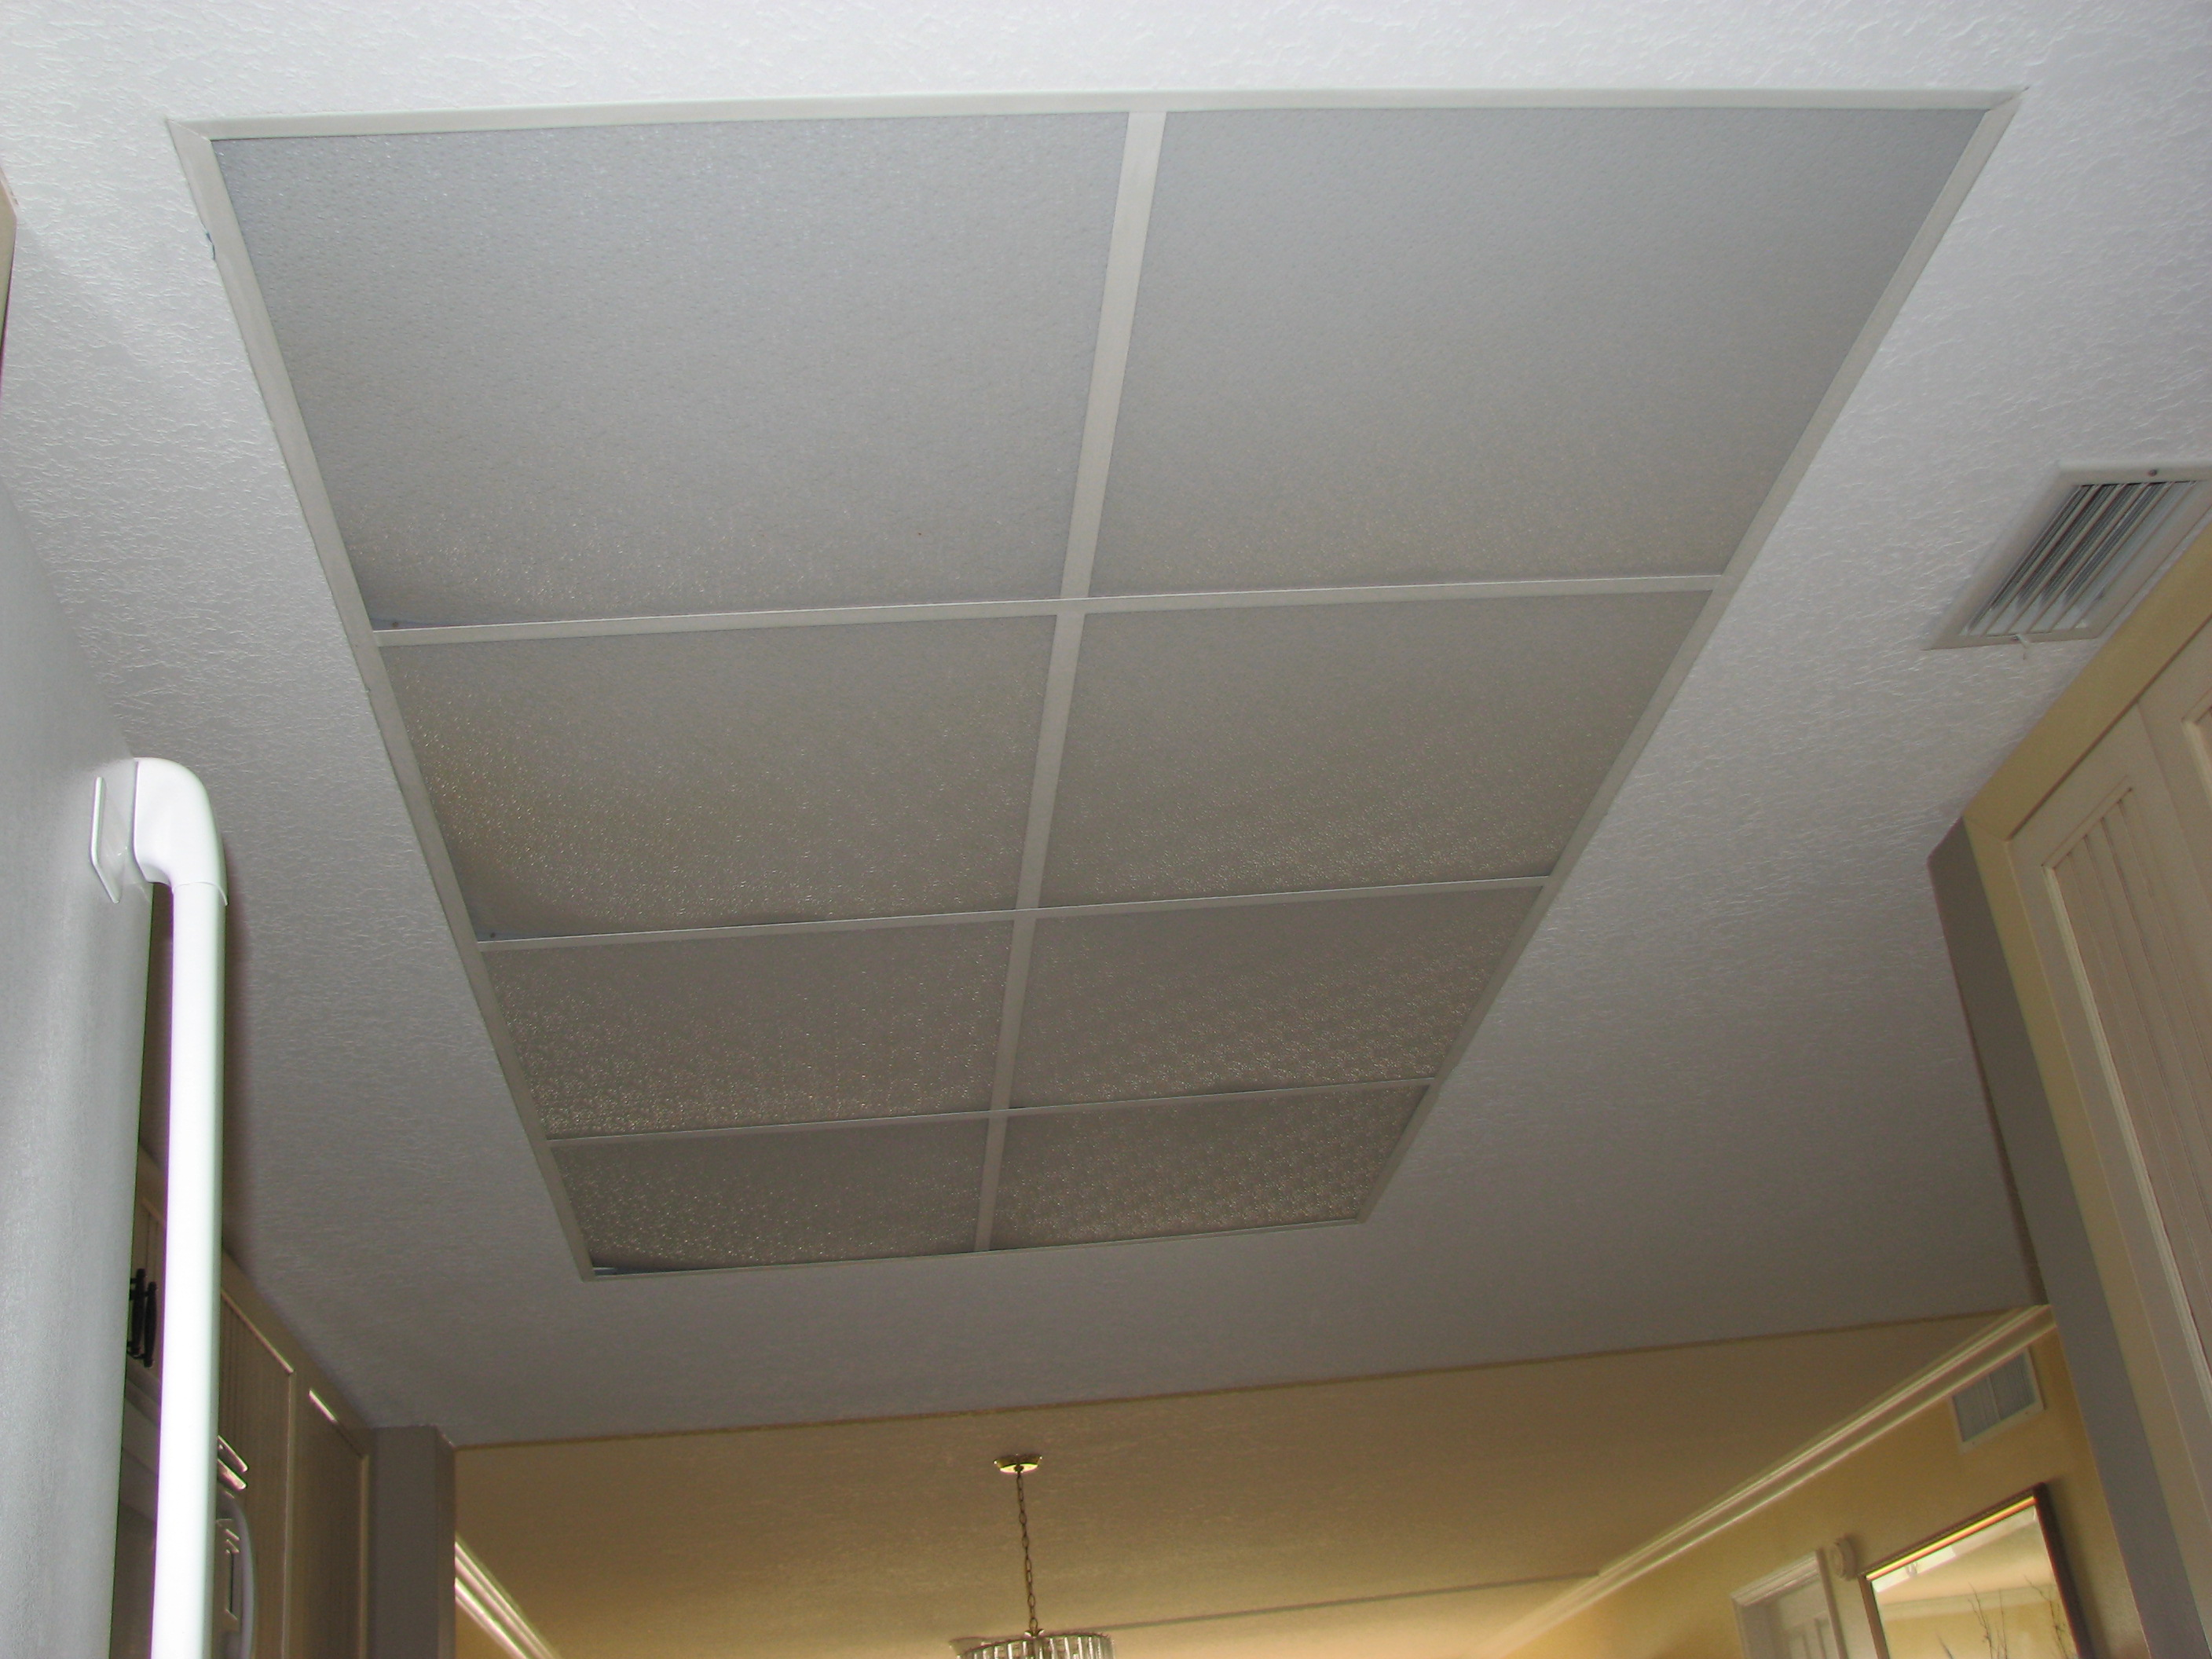 Cocoa Beach Condo Kitchen Ceiling Light Before